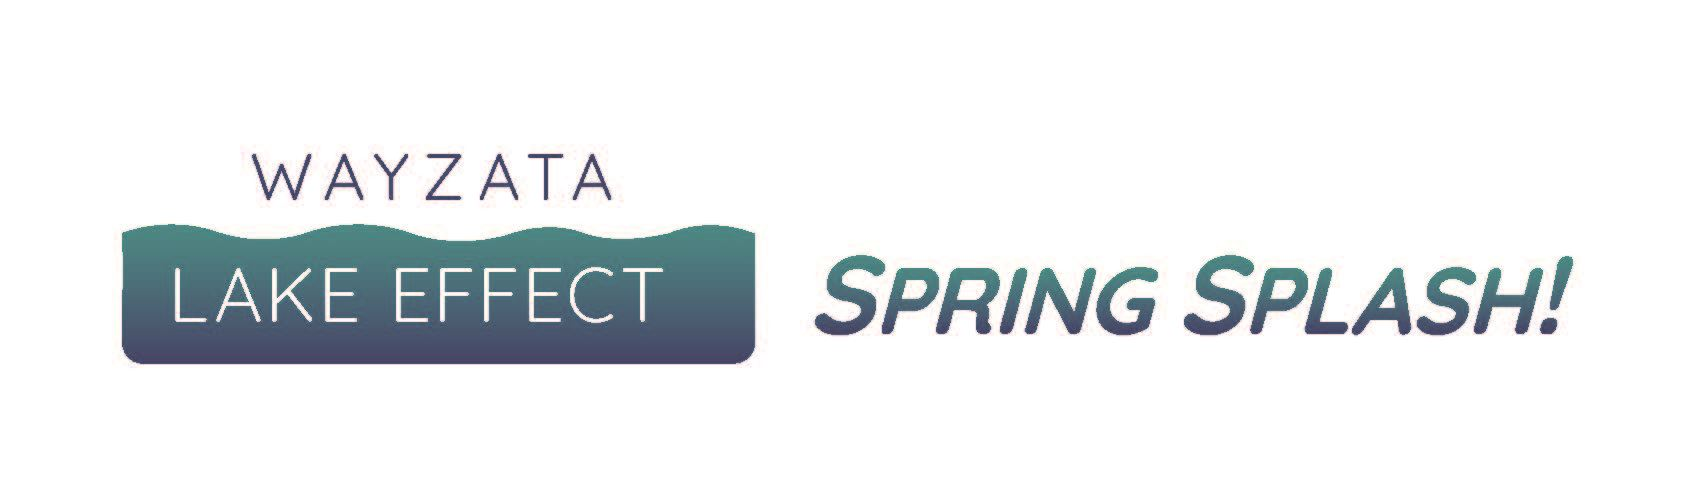 031418_Lake Effect Project_Logo_Spring Splash